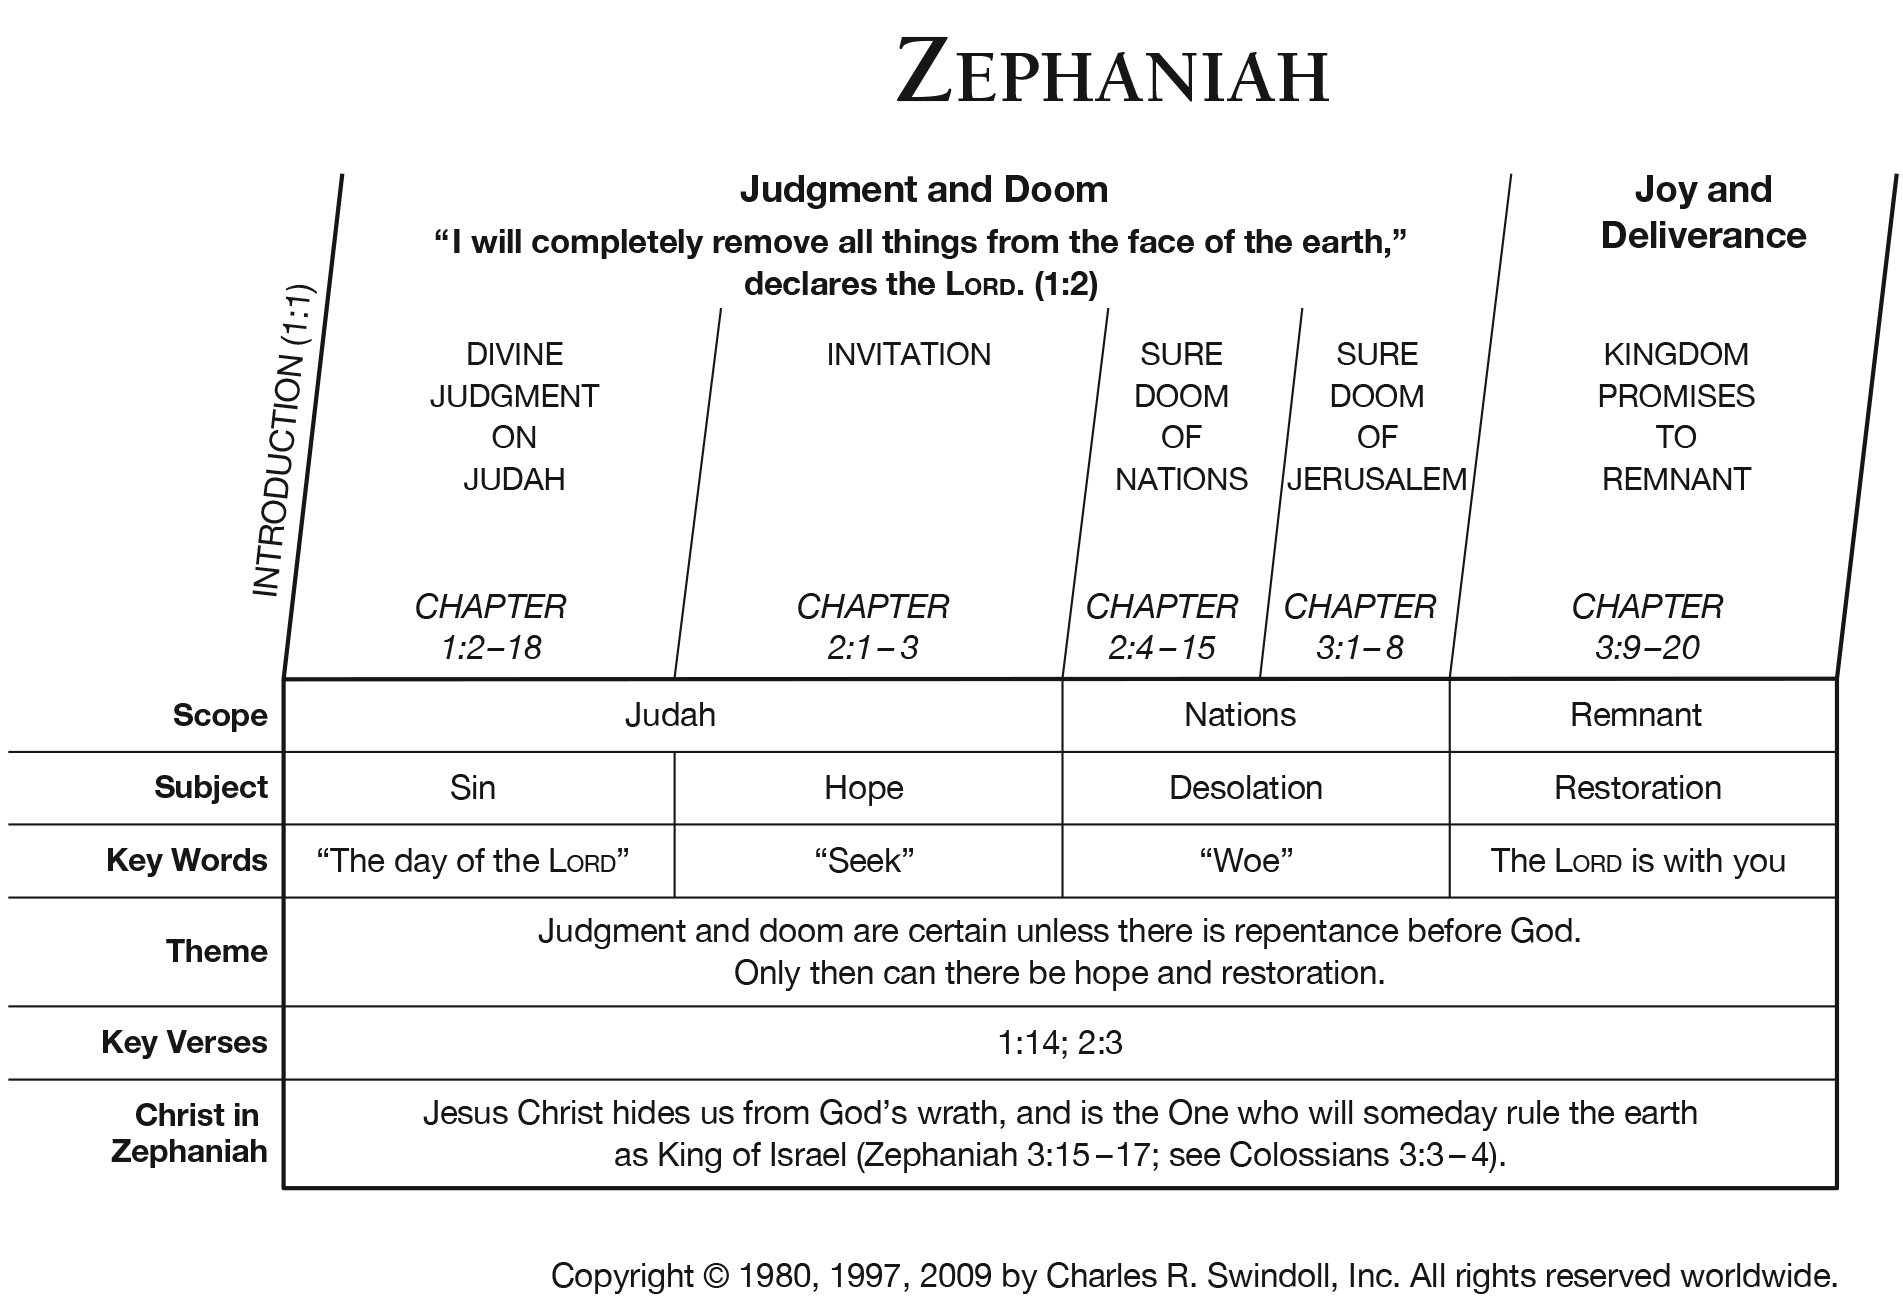 Book of Zephaniah Overview - Insight for Living Ministries